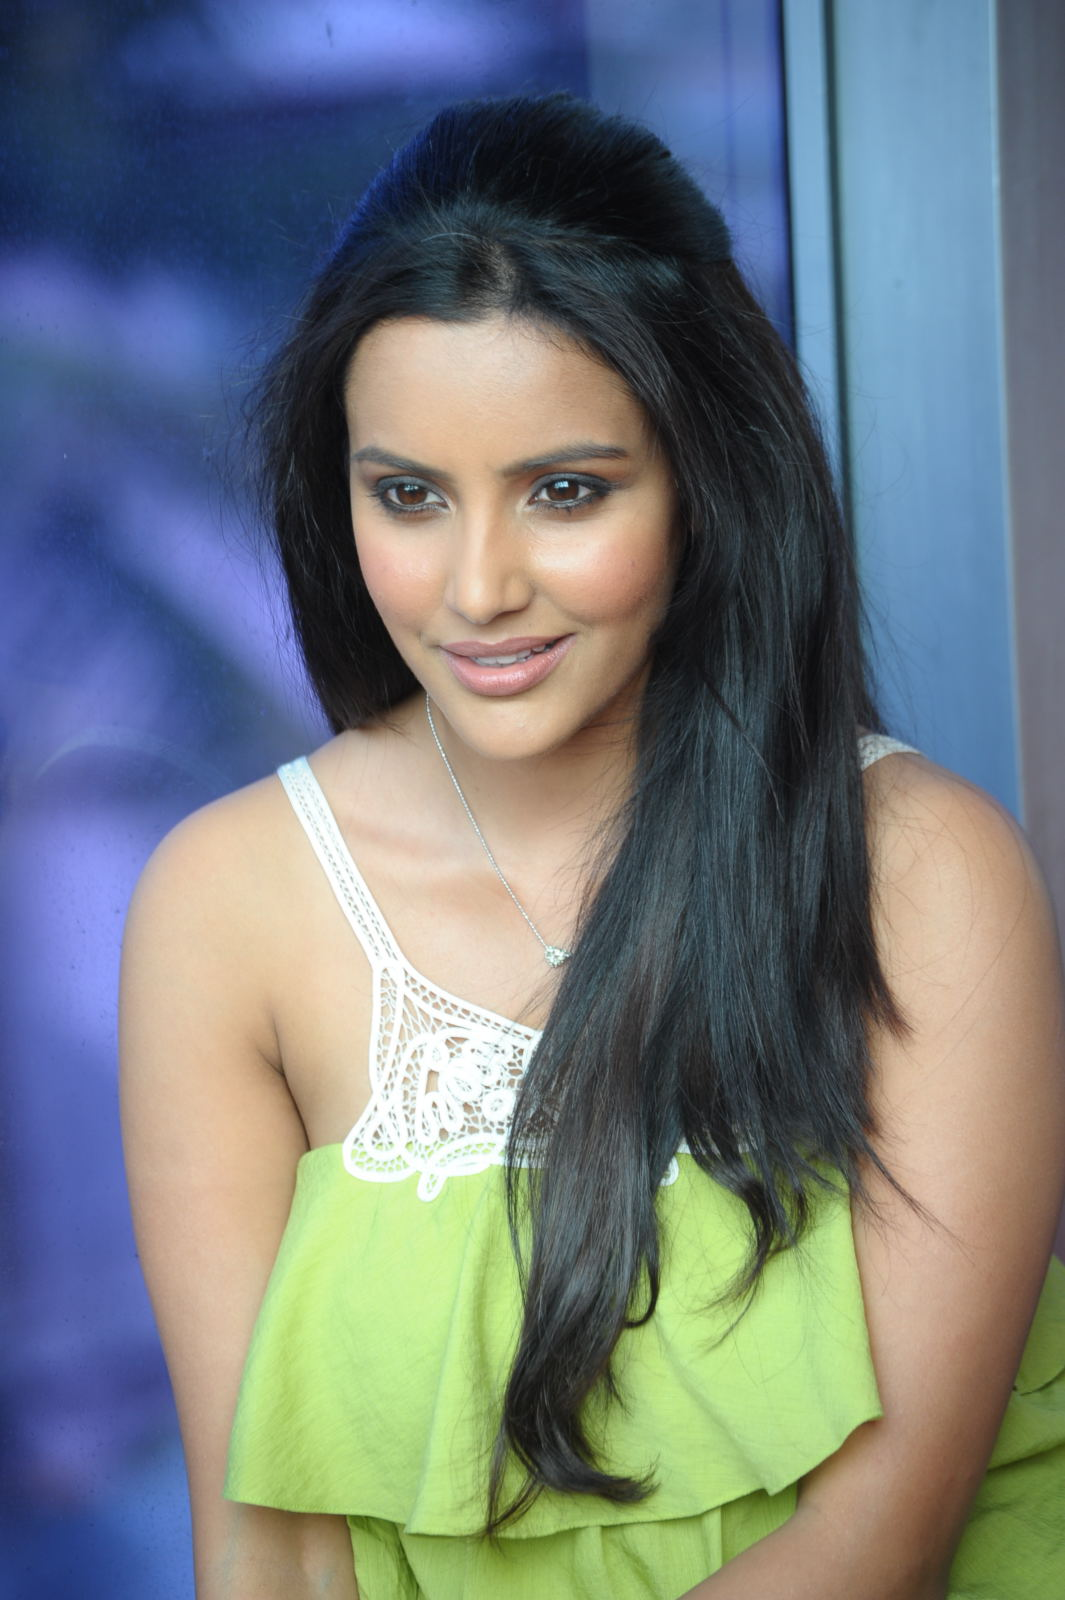 Hot Images: South Indian Film Actresss Priya Anand Hot Photos ...